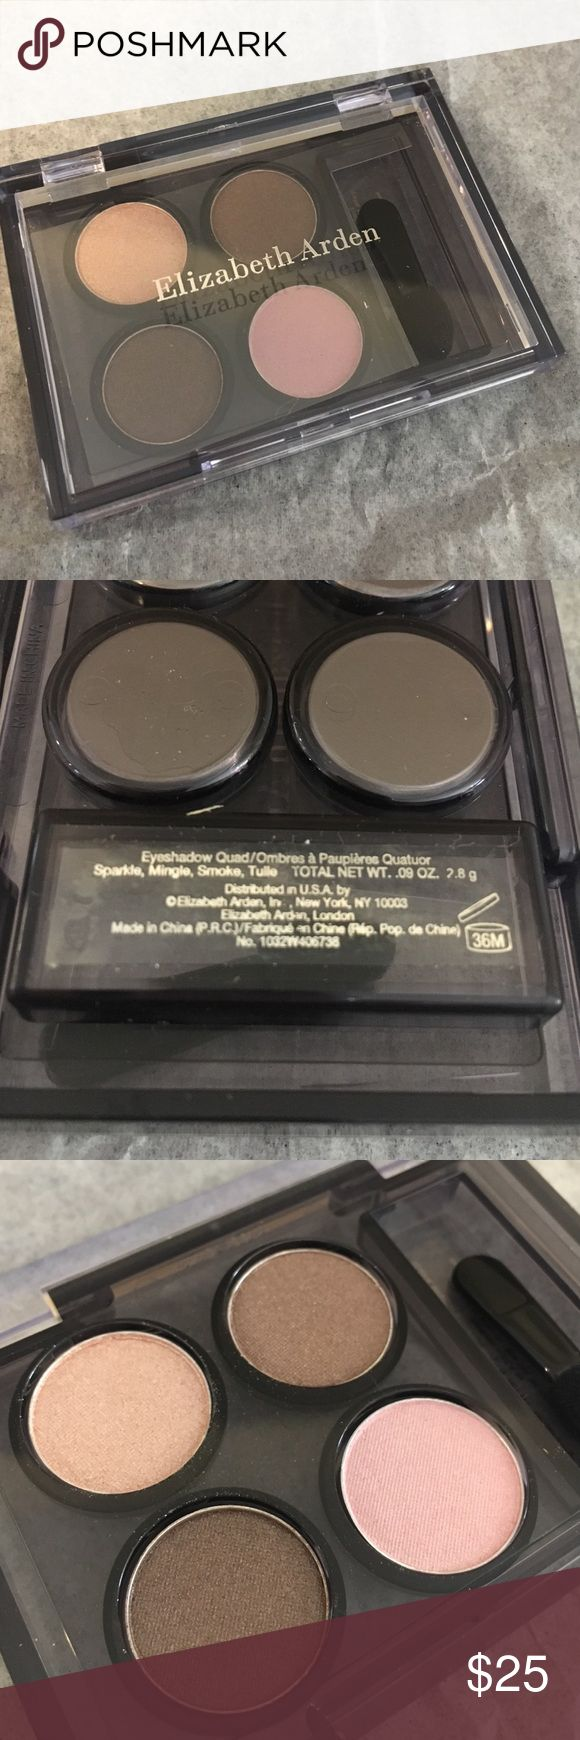 Elizabeth Arden eyeshadow Quad palette, colors include Sparkle, Mingle, Smoke, and Tulle. Brand new, never used. Elizabeth Arden Makeup Eyeshadow